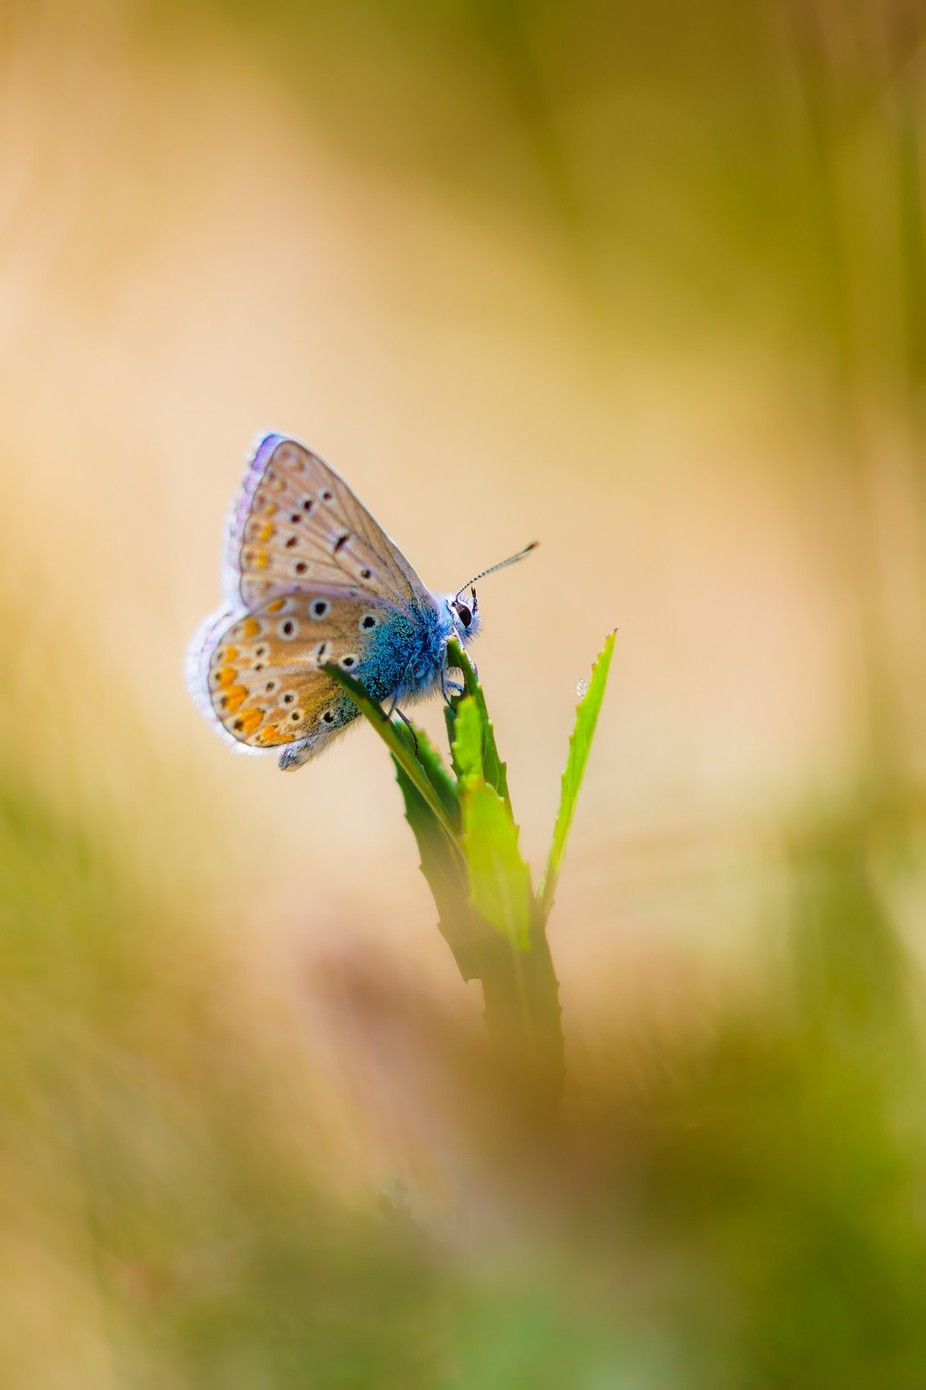 the dreamer by riankrenzer - Beautiful Butterflies Photo Contest